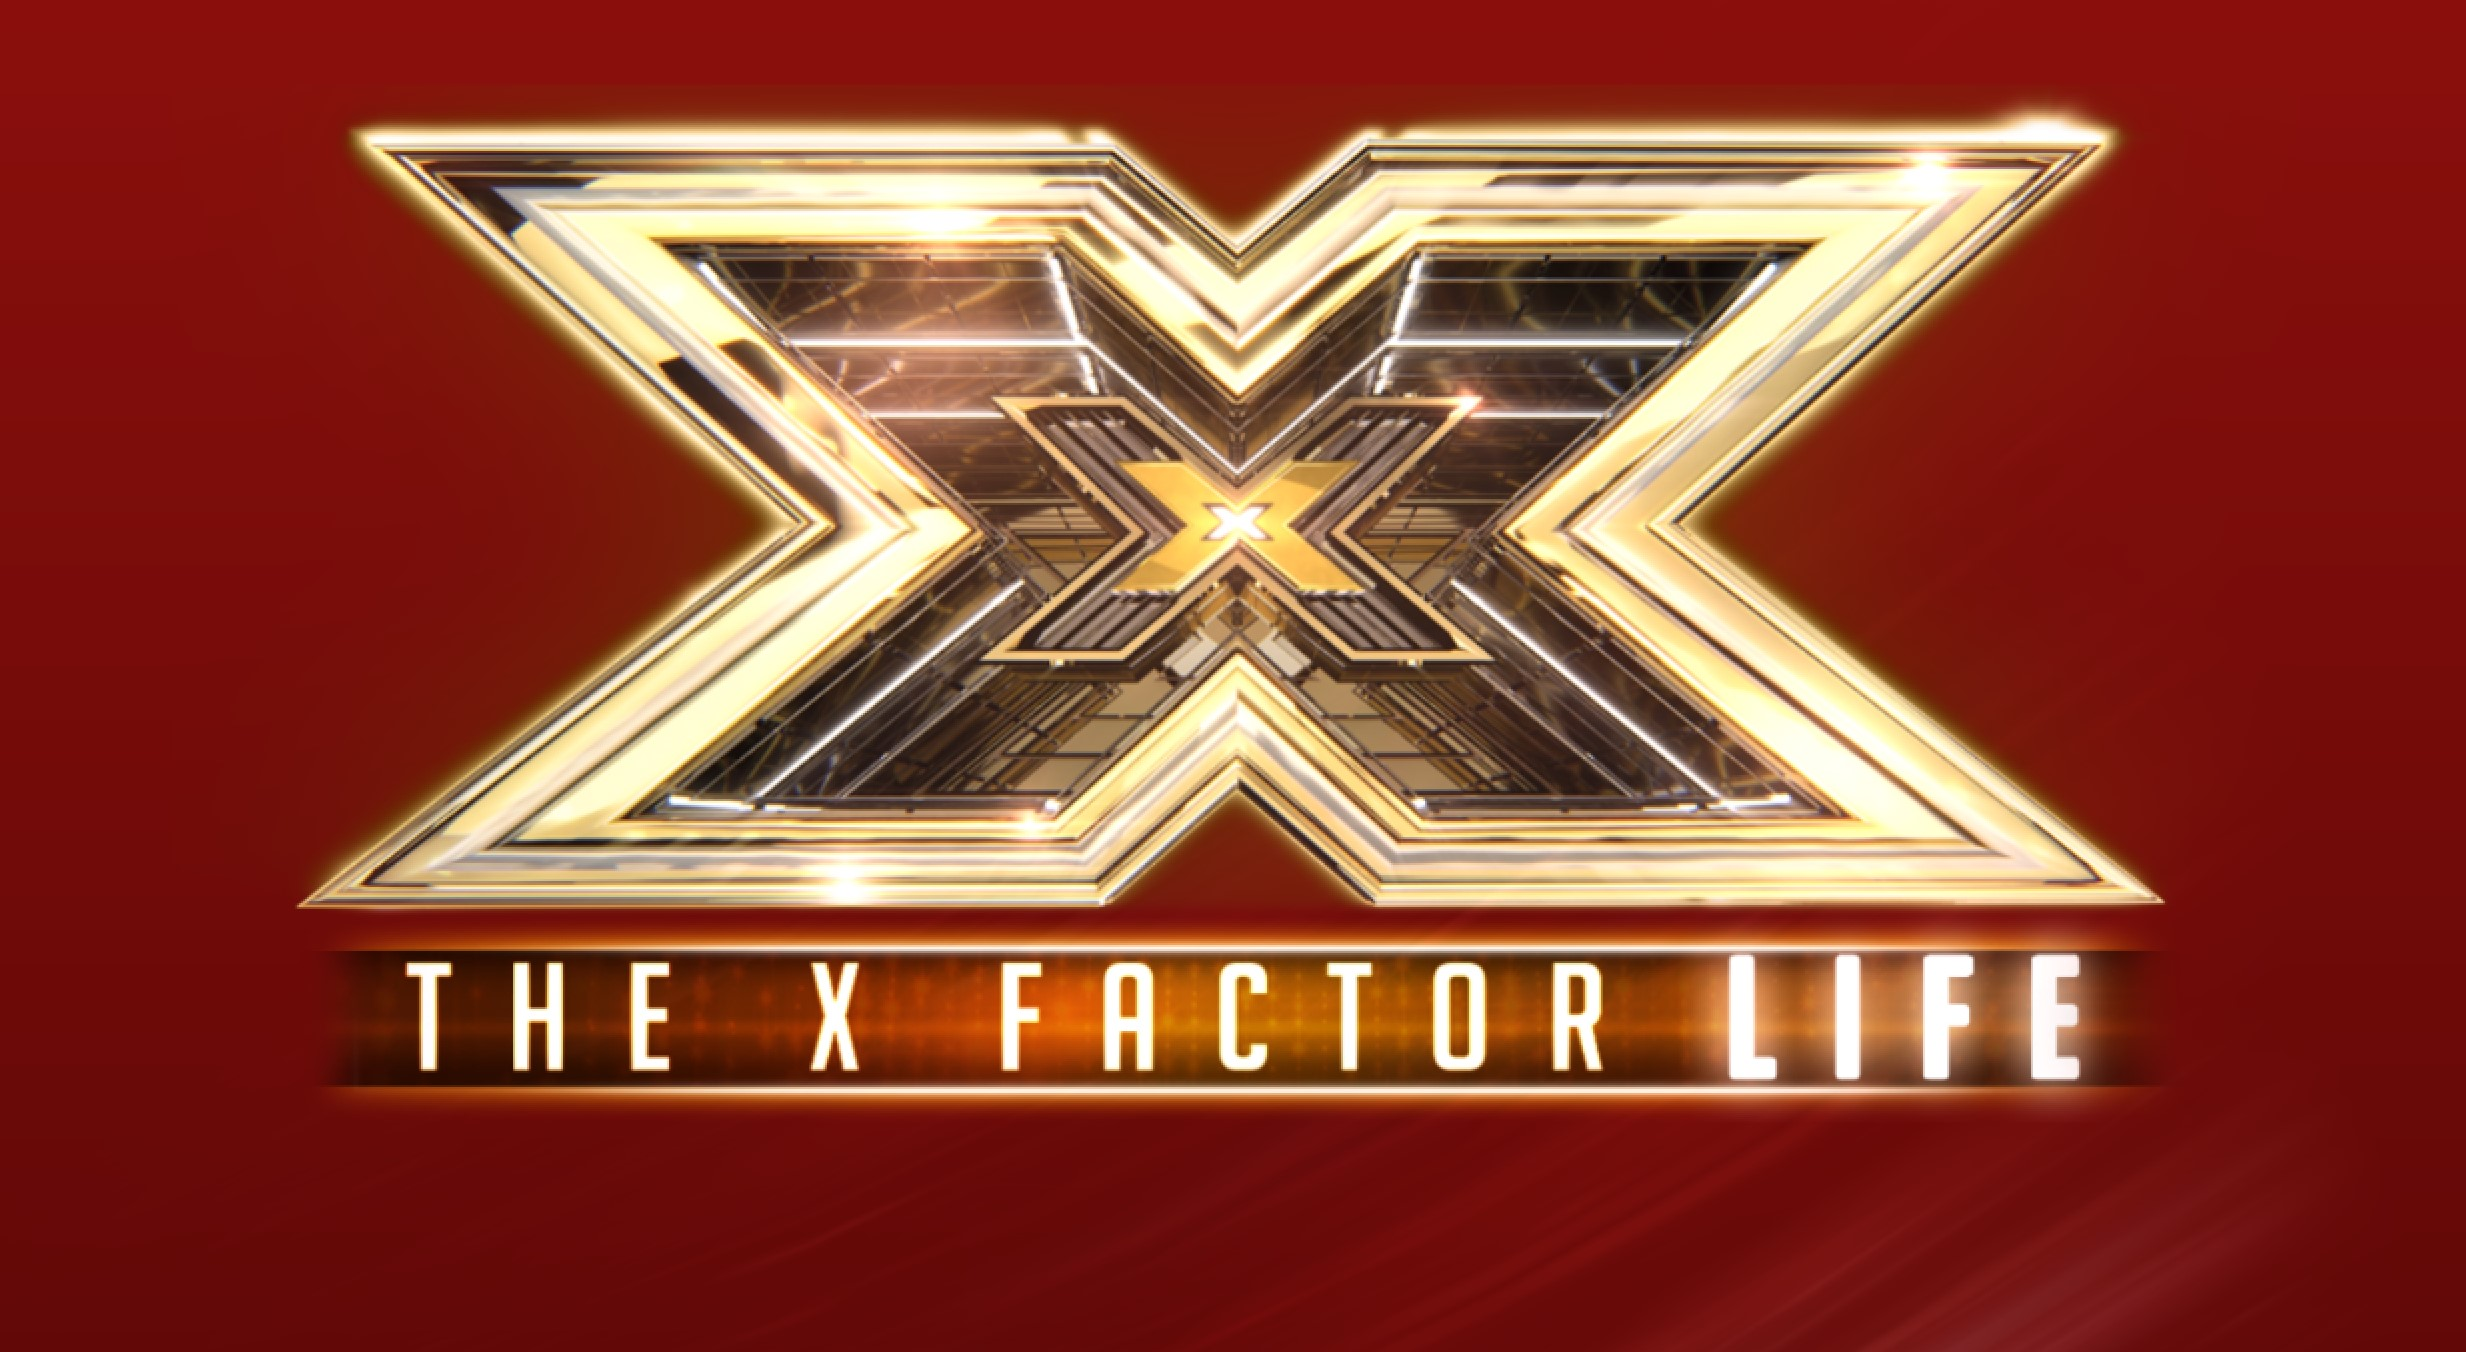 The X Factor Life cheats and tips - Everything you need to know before playing